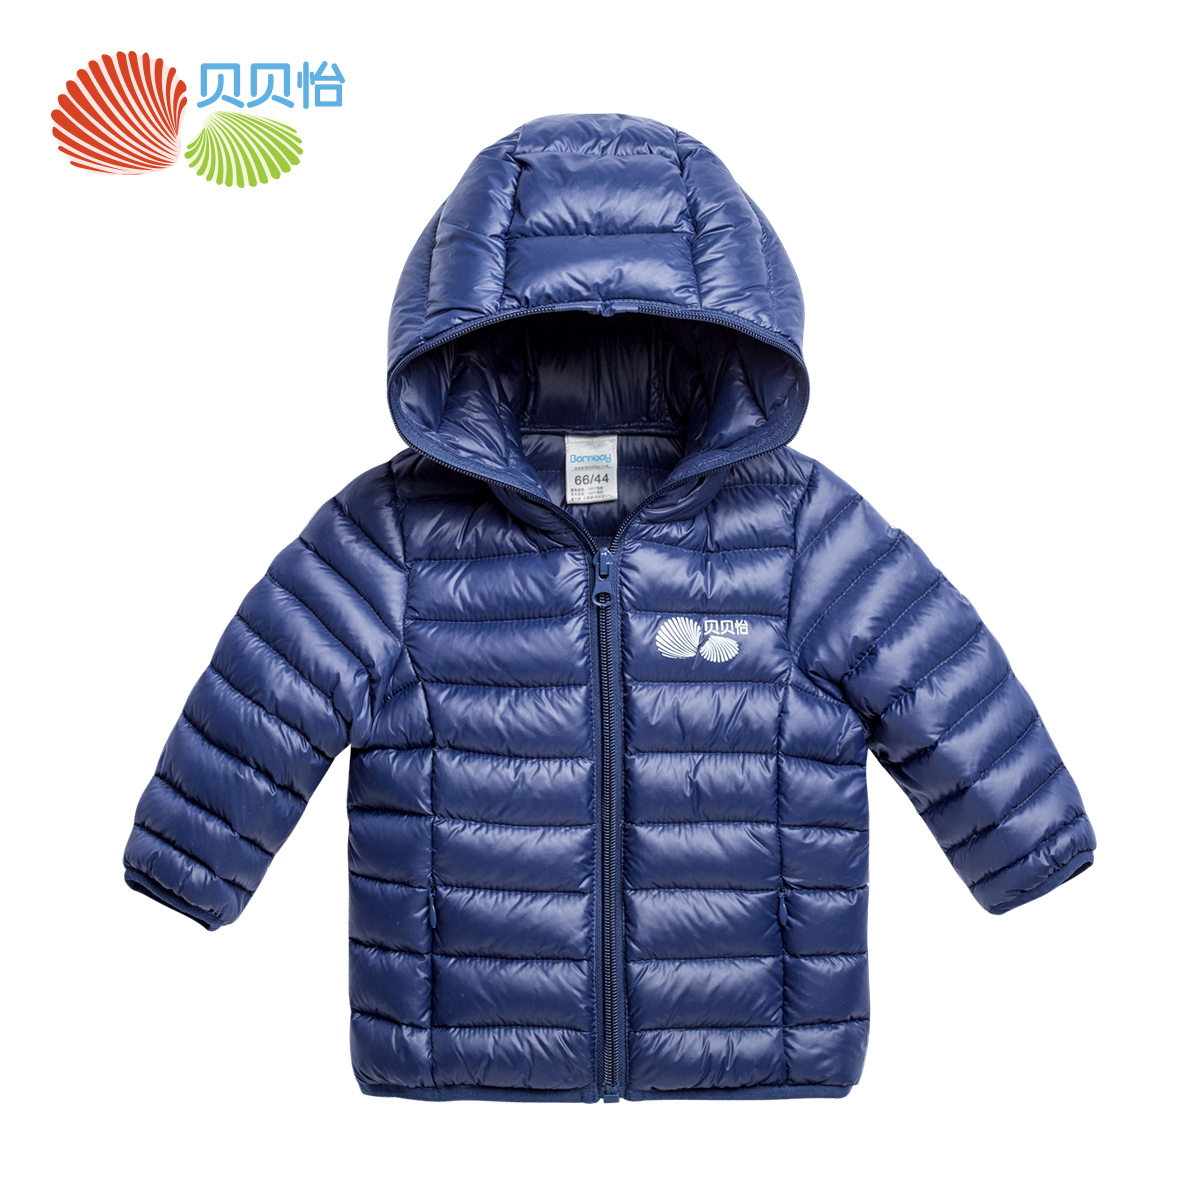 Children down jacket 0 1 2 year old baby down jacket male baby girl boy  snowsuit baby snowsuit children s infant jackets winter-in Snow Wear from  Mother ... da91a10e8dc2